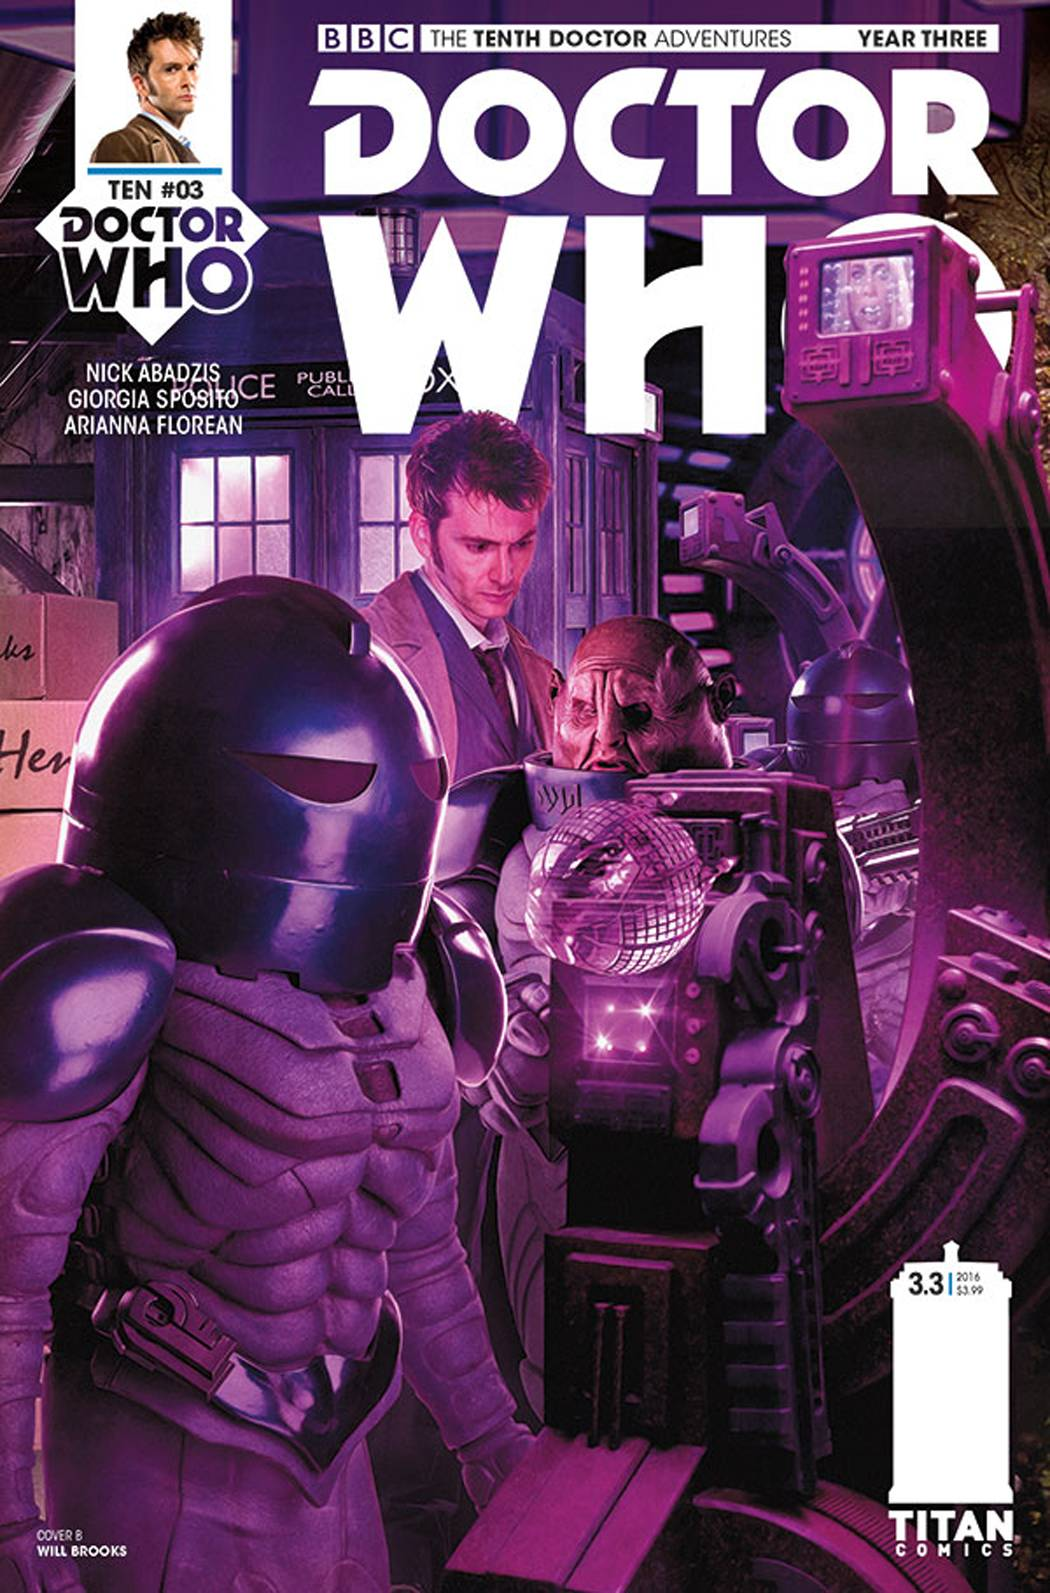 DOCTOR WHO 10TH YEAR THREE #3 CVR B PHOTO